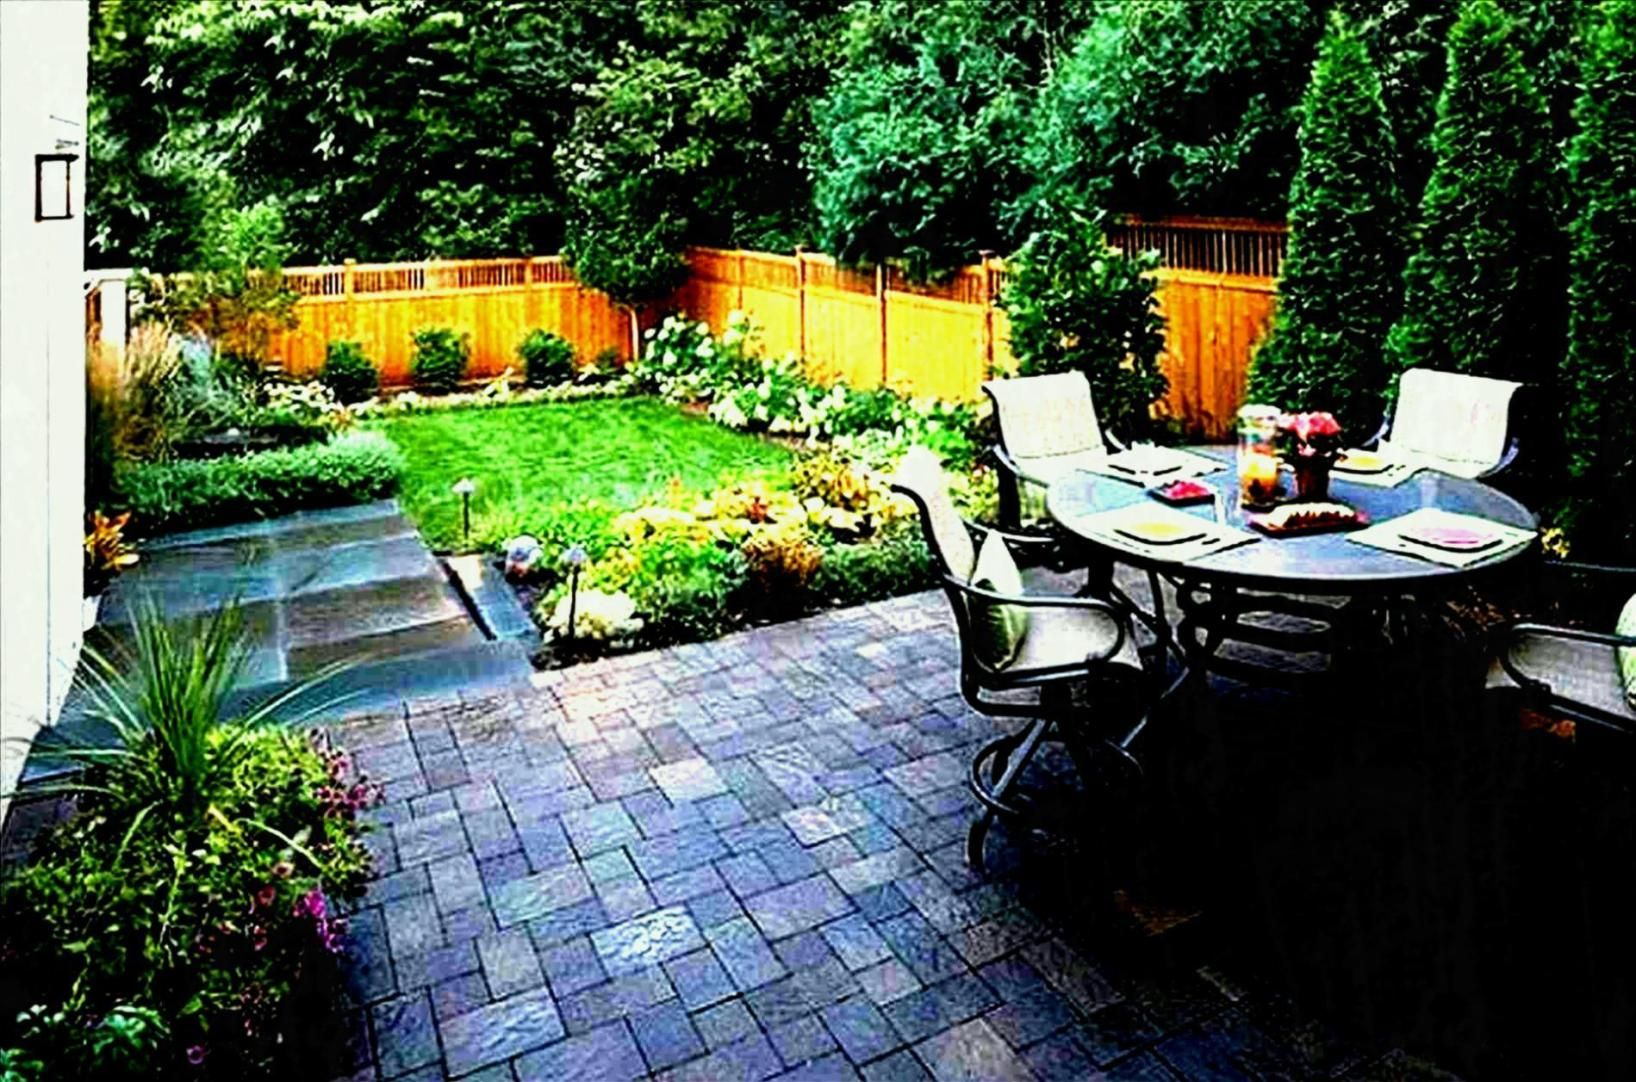 45 Backyard Patio Ideas That Will Amaze Inspire You Pictures Of with regard to Backyard Entertainment Ideas